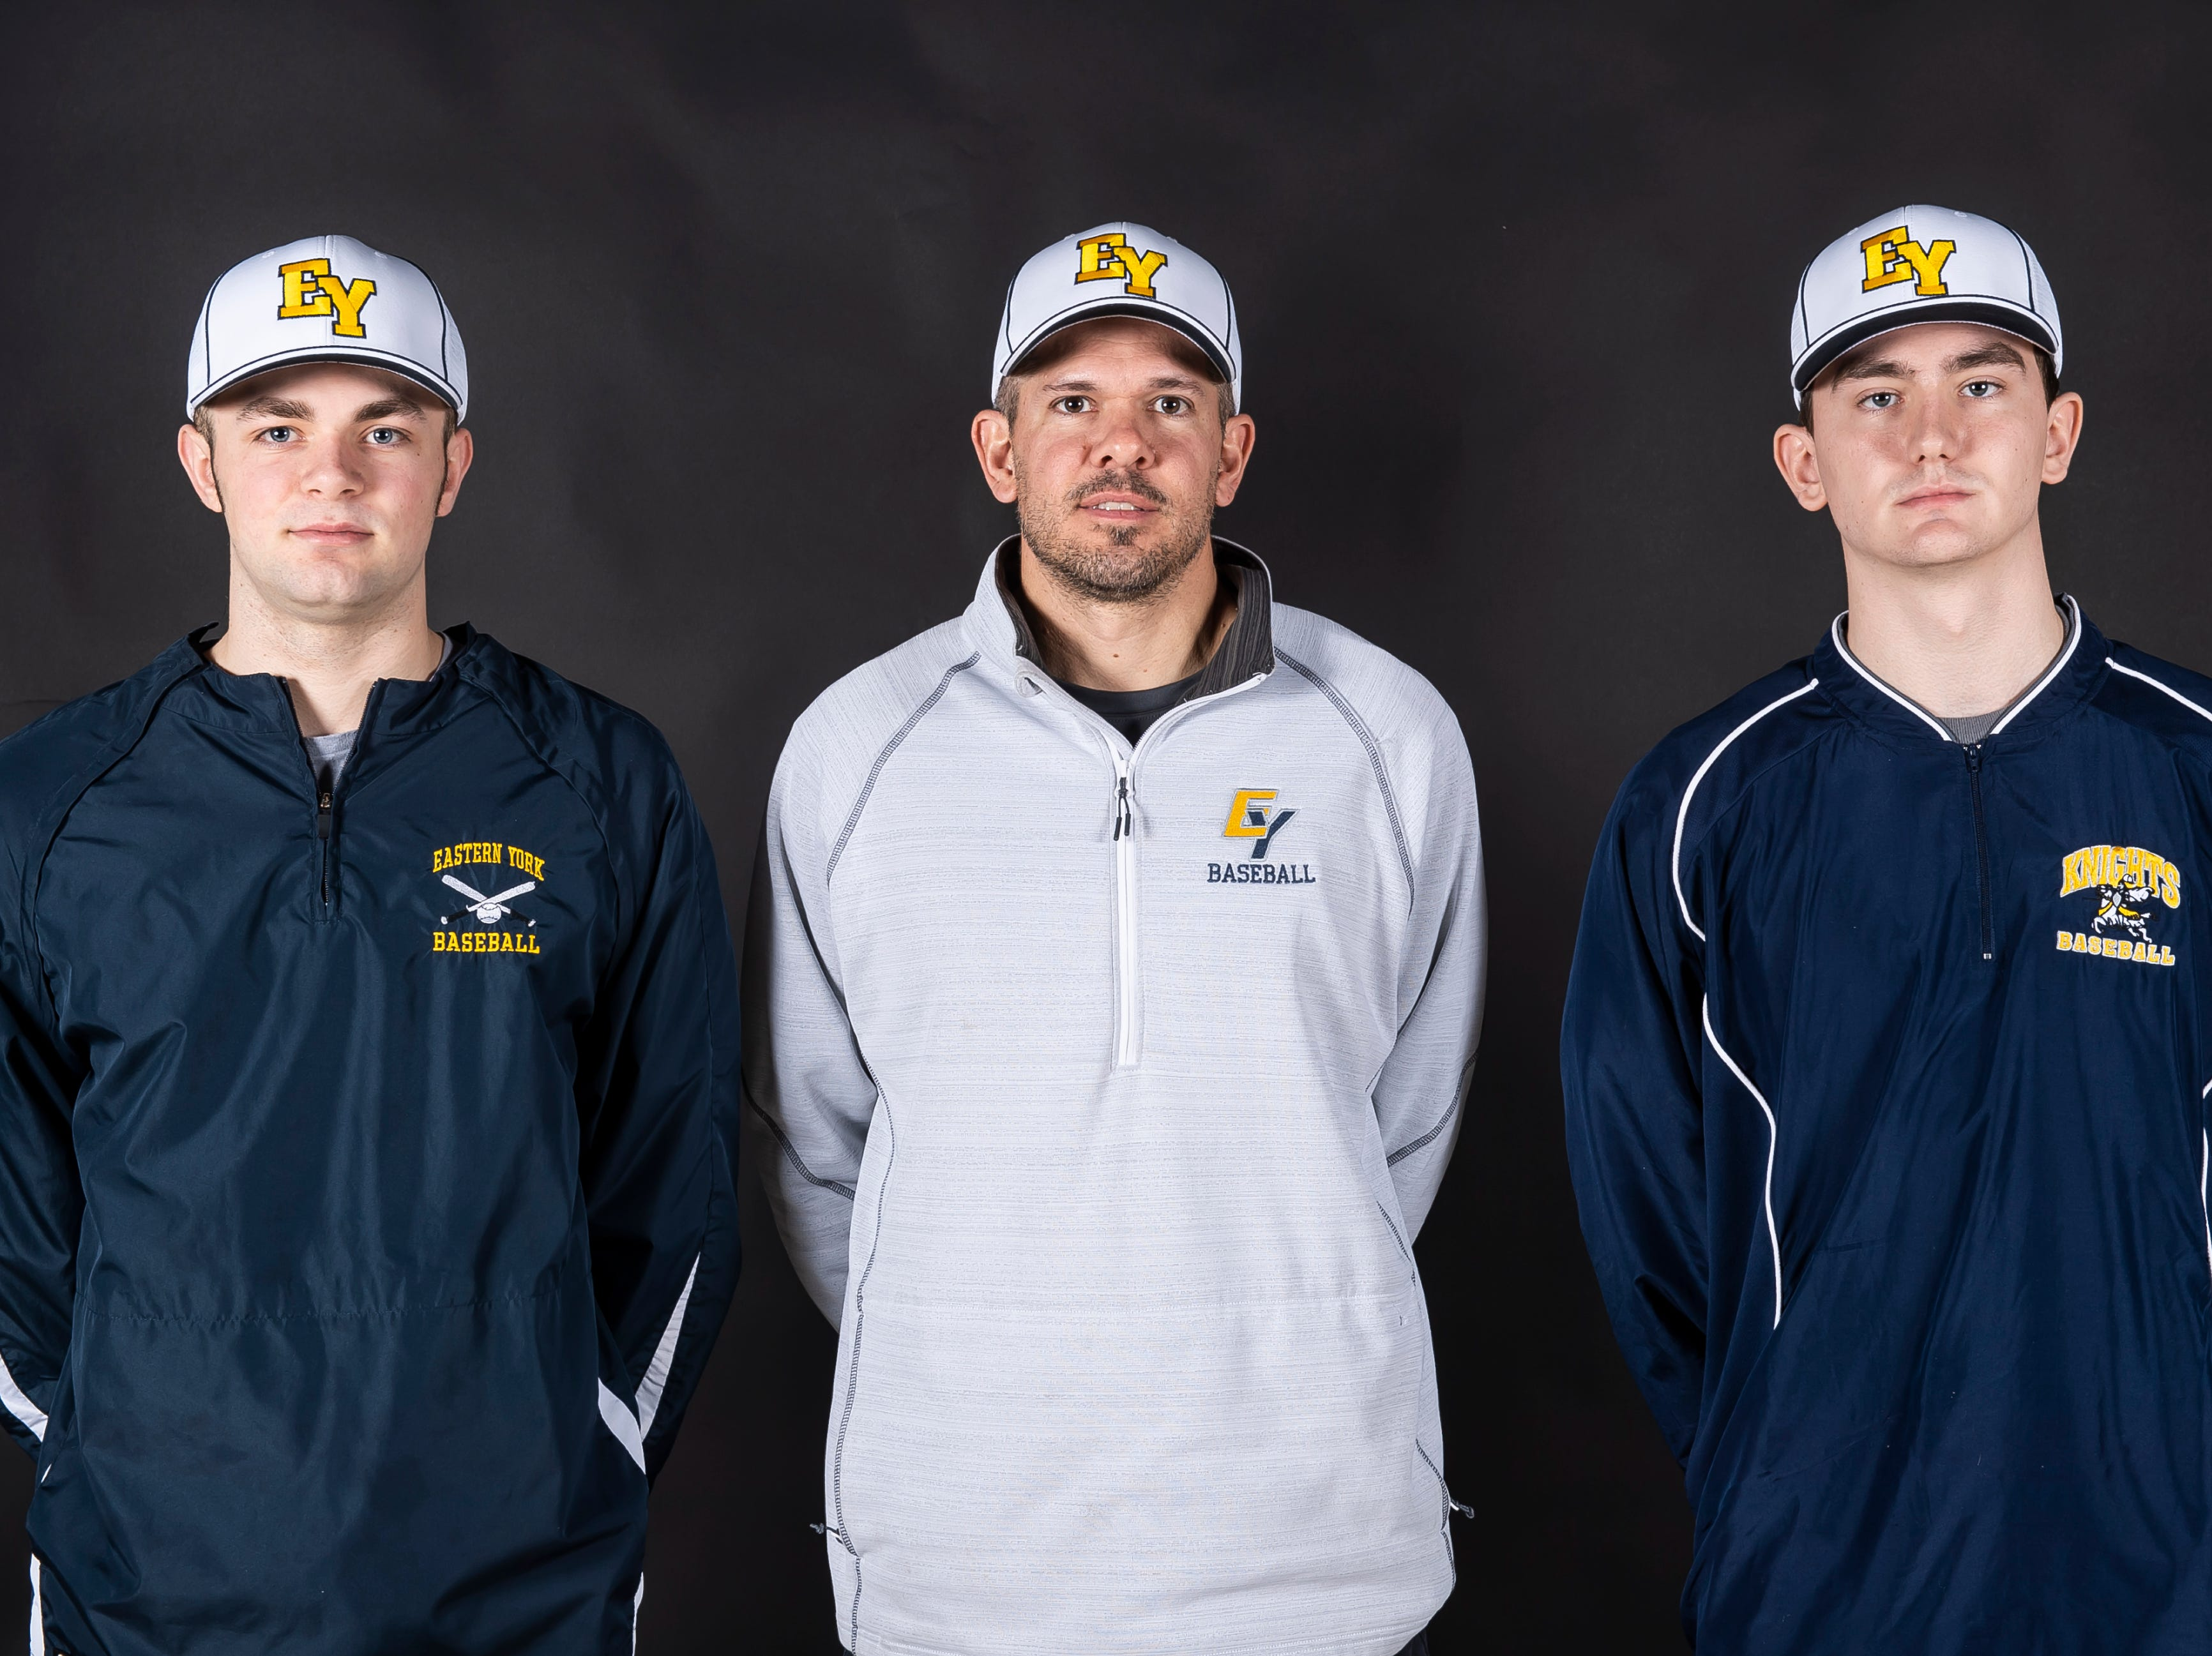 Eastern York baseball coach Brett Heiser poses with players Bren Taylor, left, and Emmit Silar in the GameTimePA photo booth during spring sports media day in York Sunday, March 10, 2019.